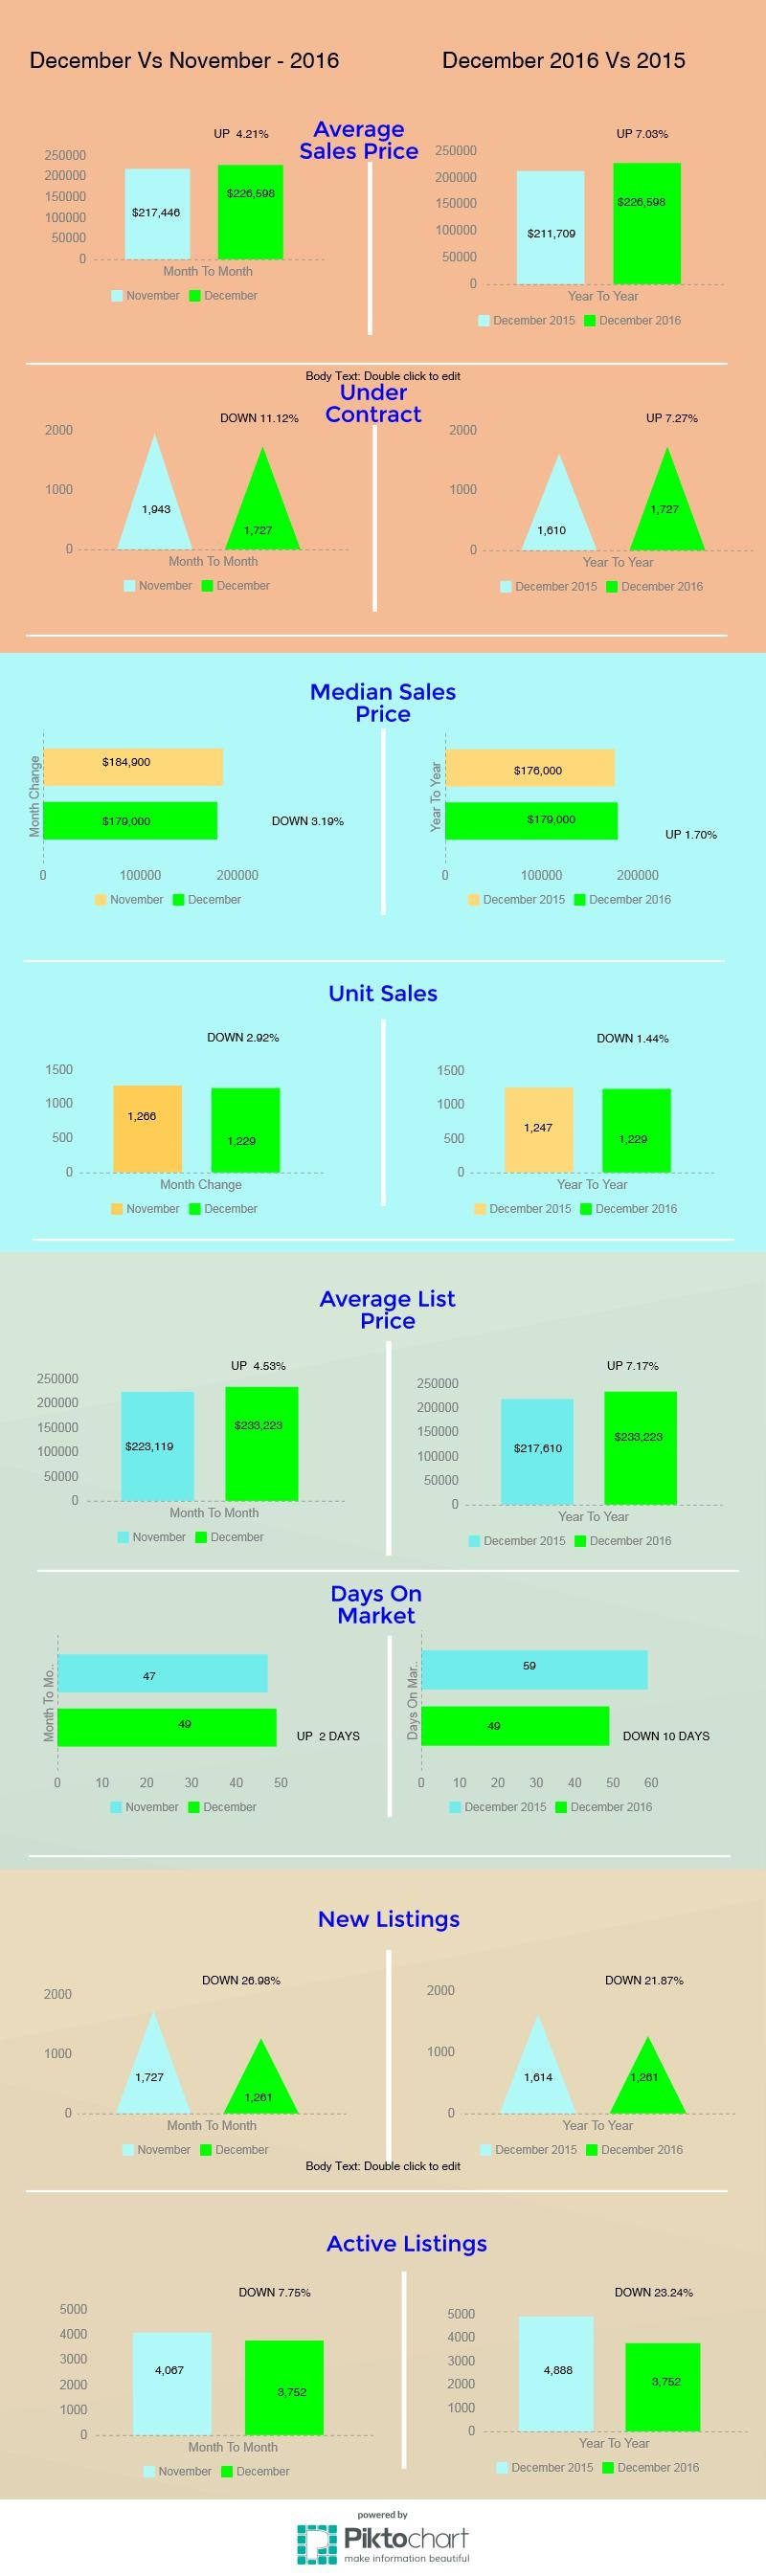 Tucson Housing Market December 2016